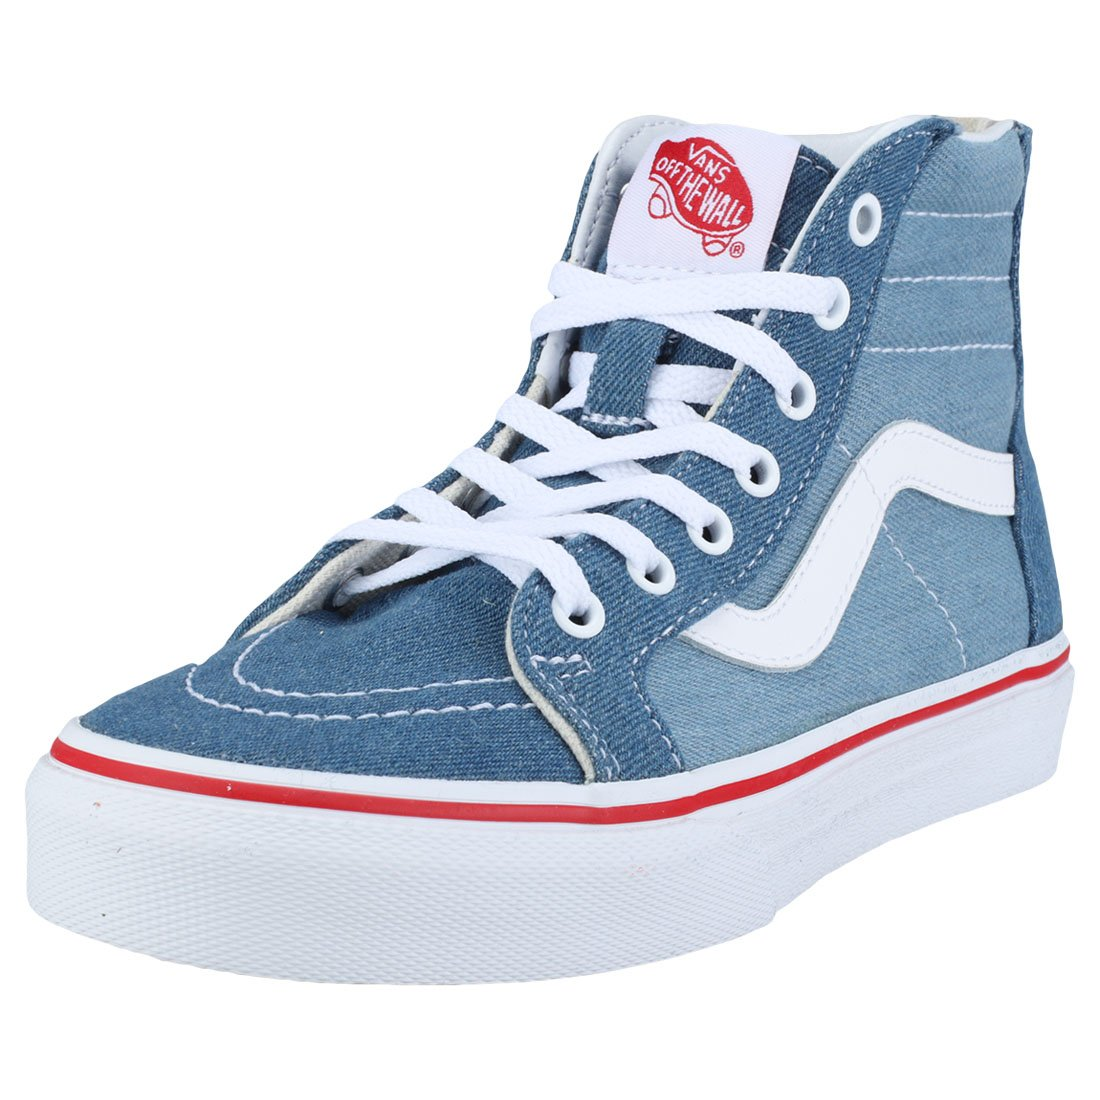 Vans Kids K SK8-HI Zip Denim 2 Tone Blue True White Size 1